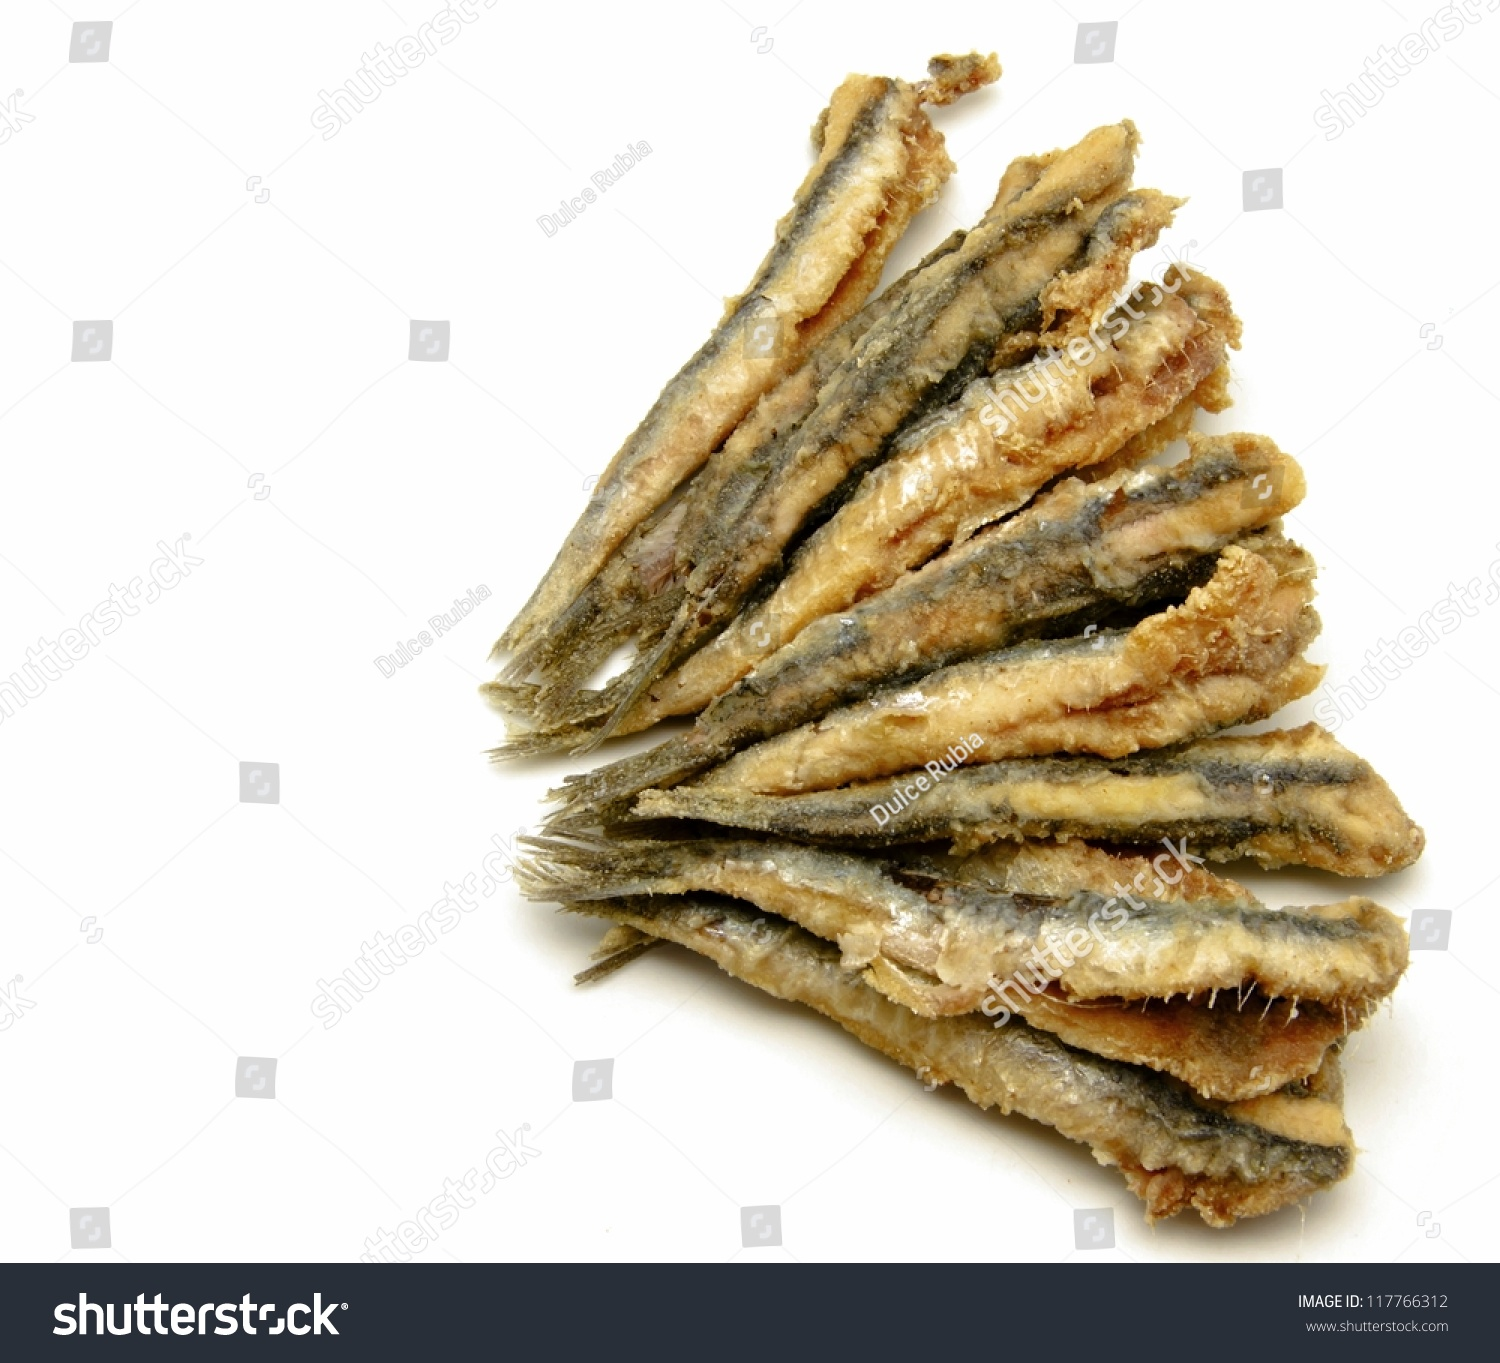 Fried Anchovies Typical Of Spain Stock Photo 117766312 : Shutterstock